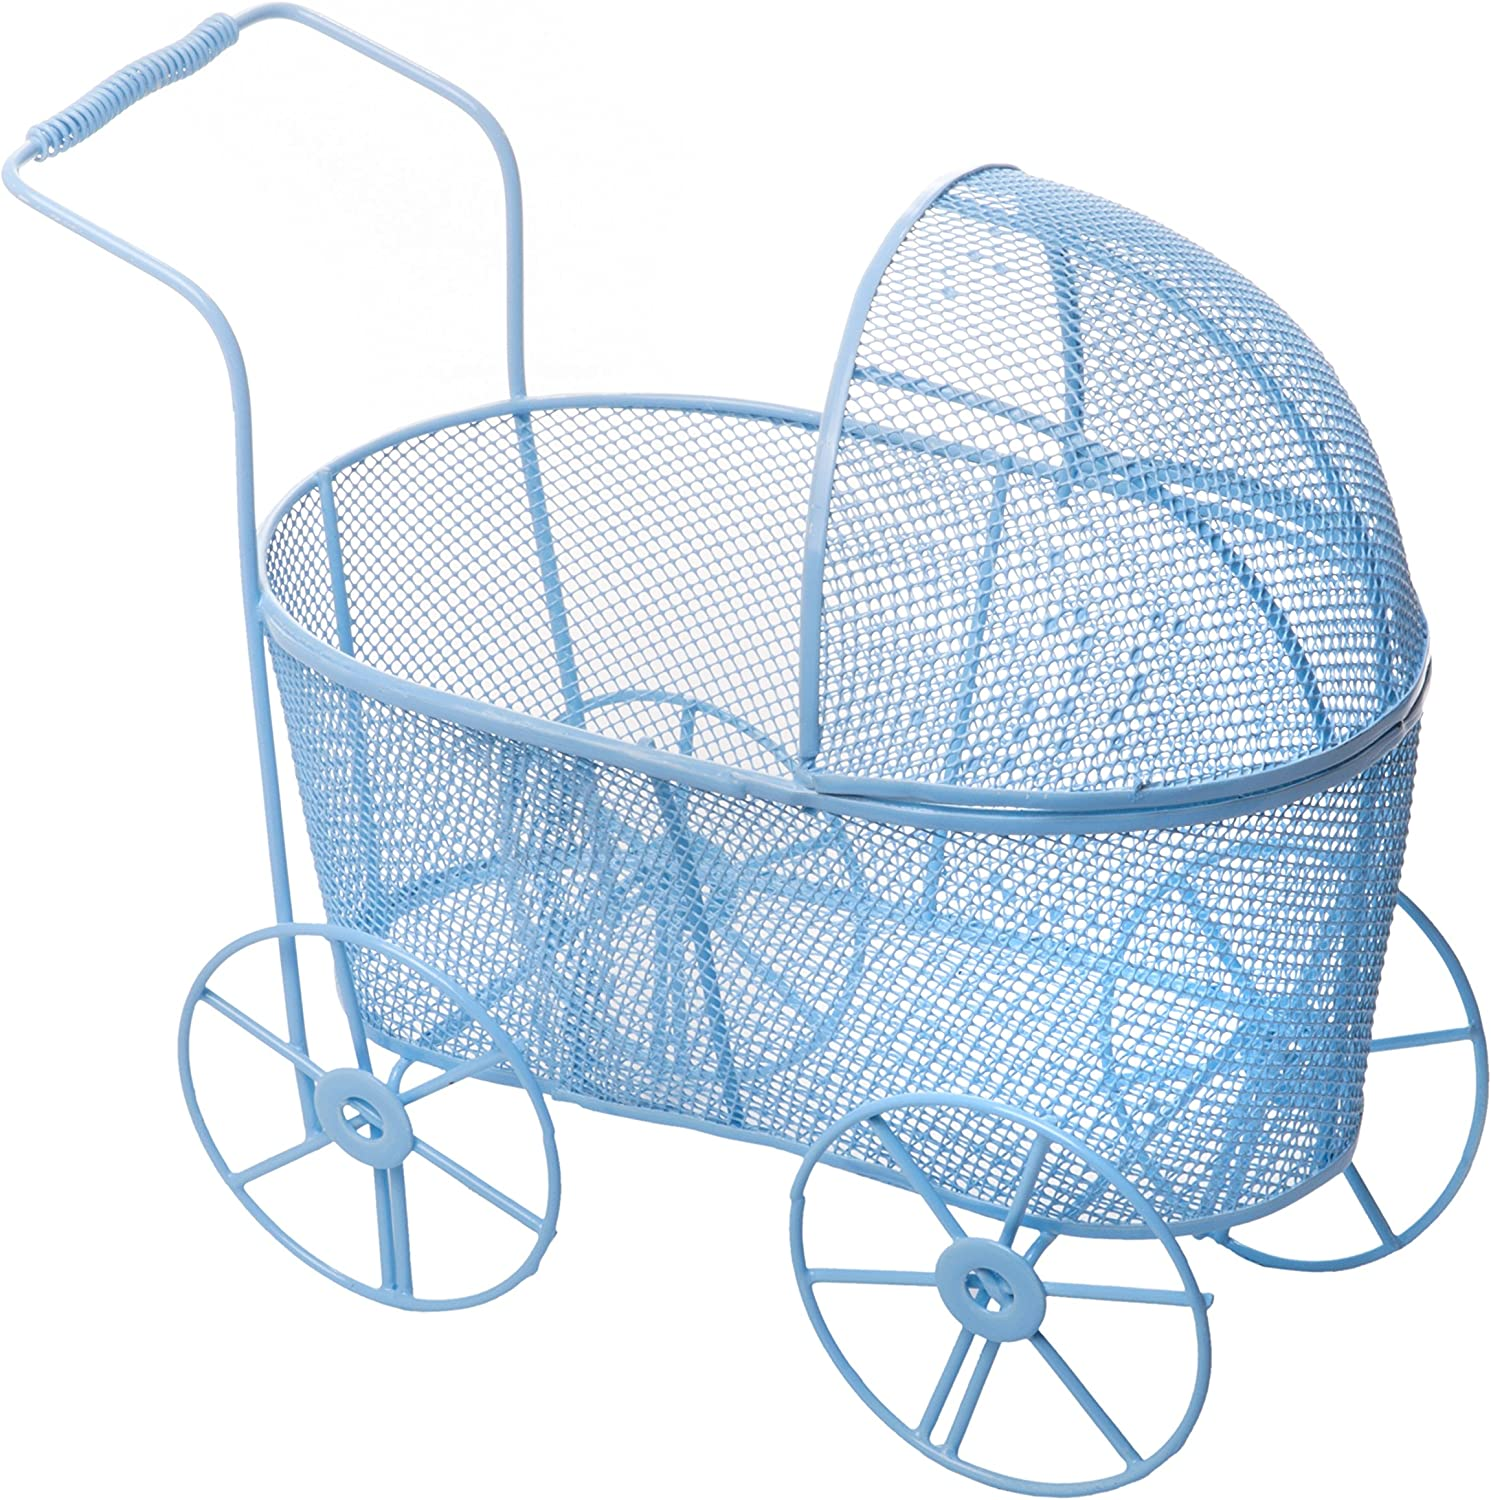 Baby Shower Carriage Wicker Table Centerpiece Favors Gifts Decorations Blue